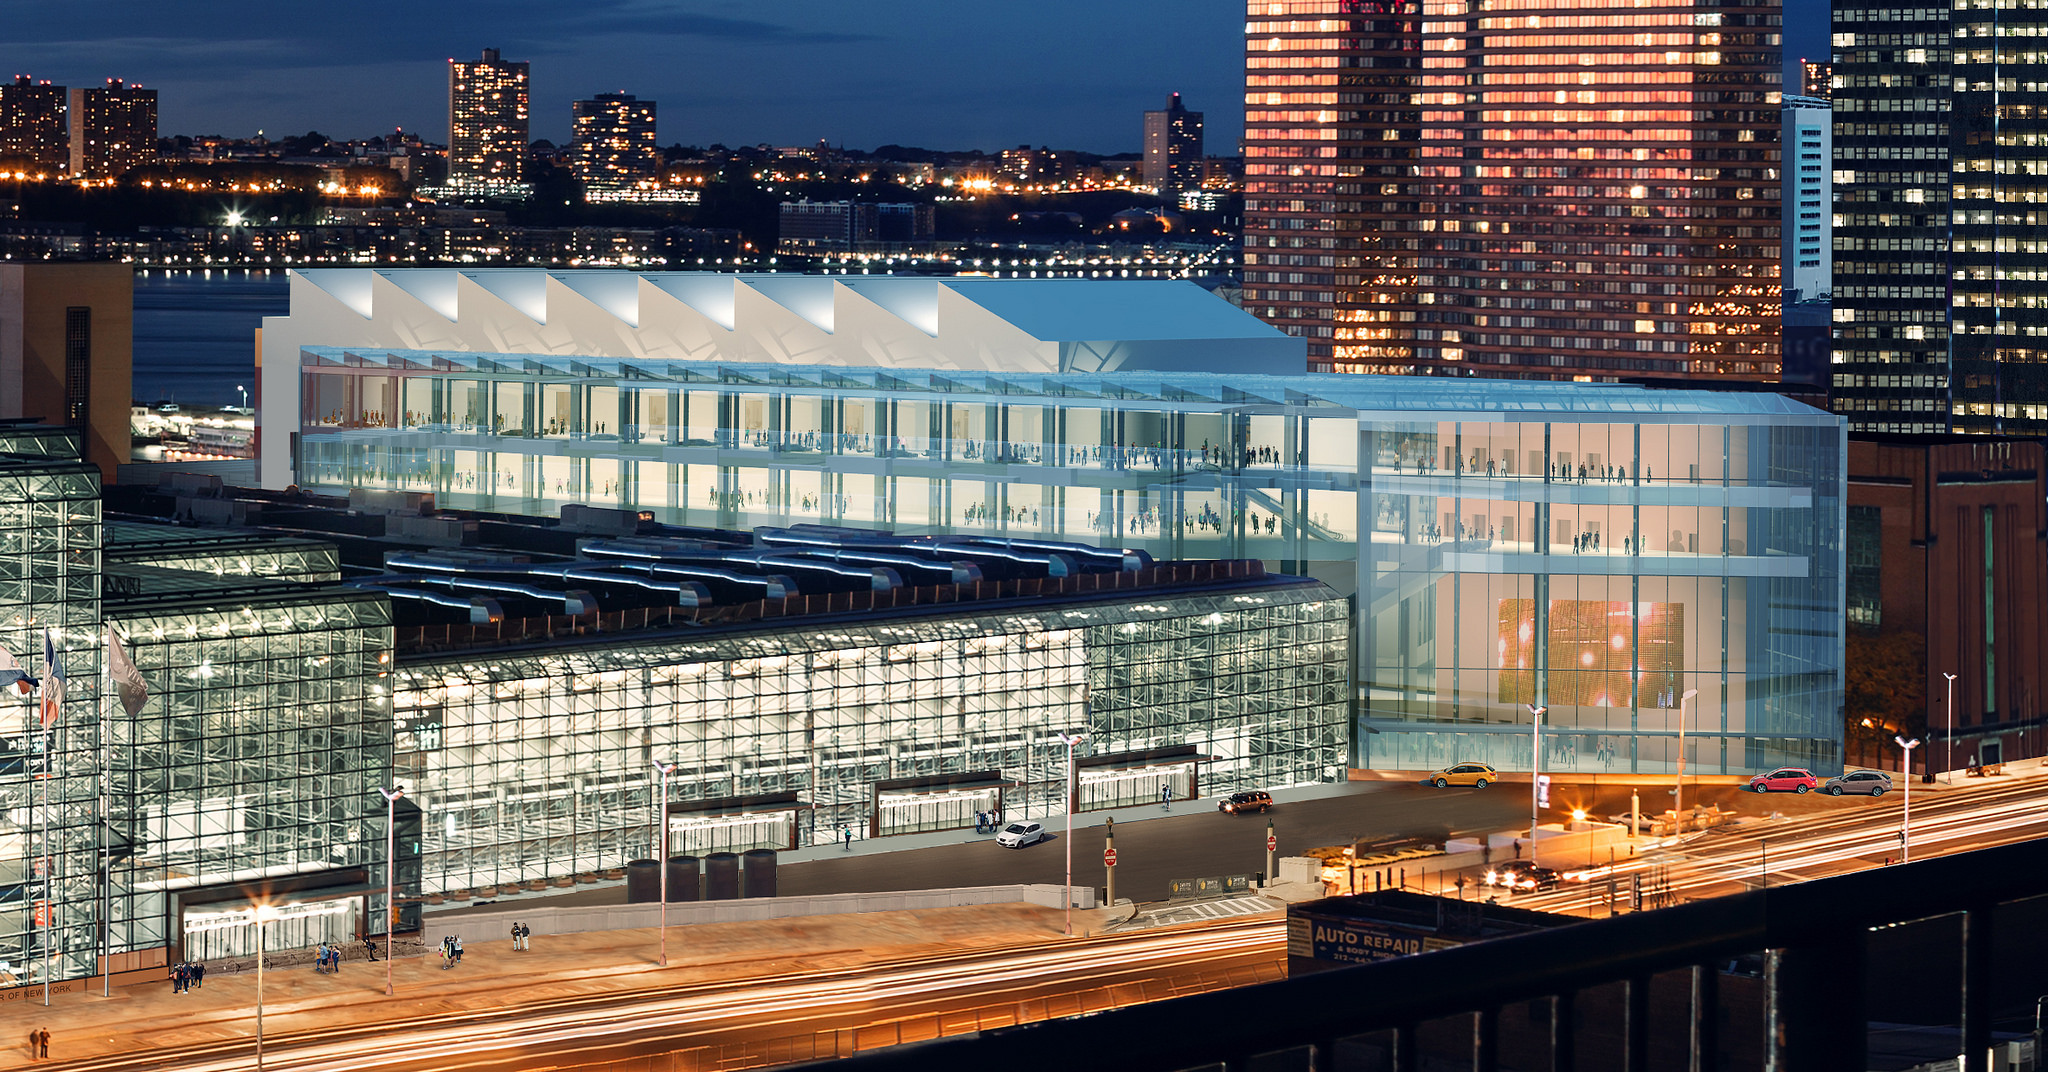 Bus station beneath Javits Center proposed in new plan to fix cross-Hudson commuter hell